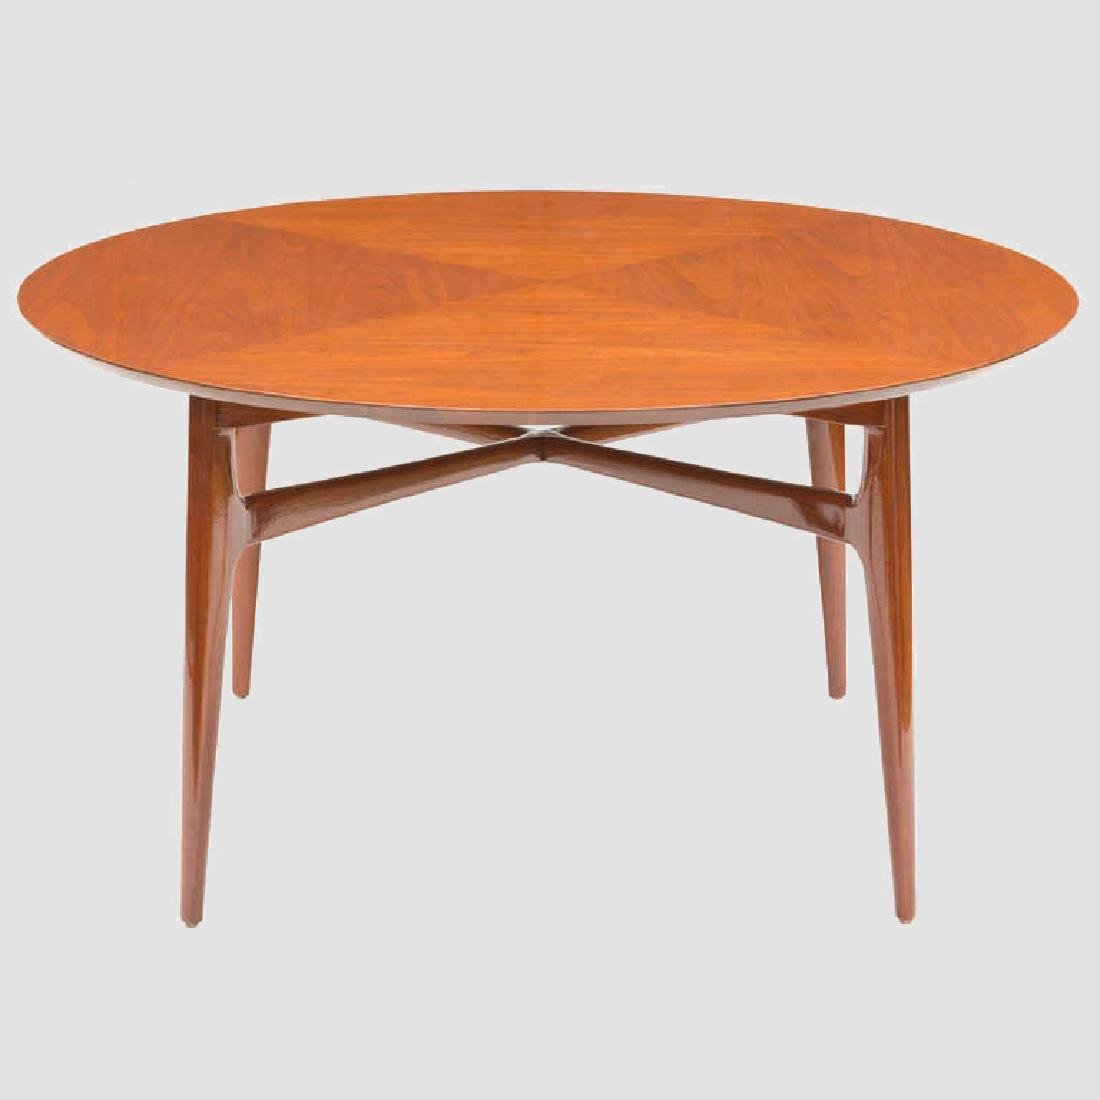 1950's Walnut Round Tea Table